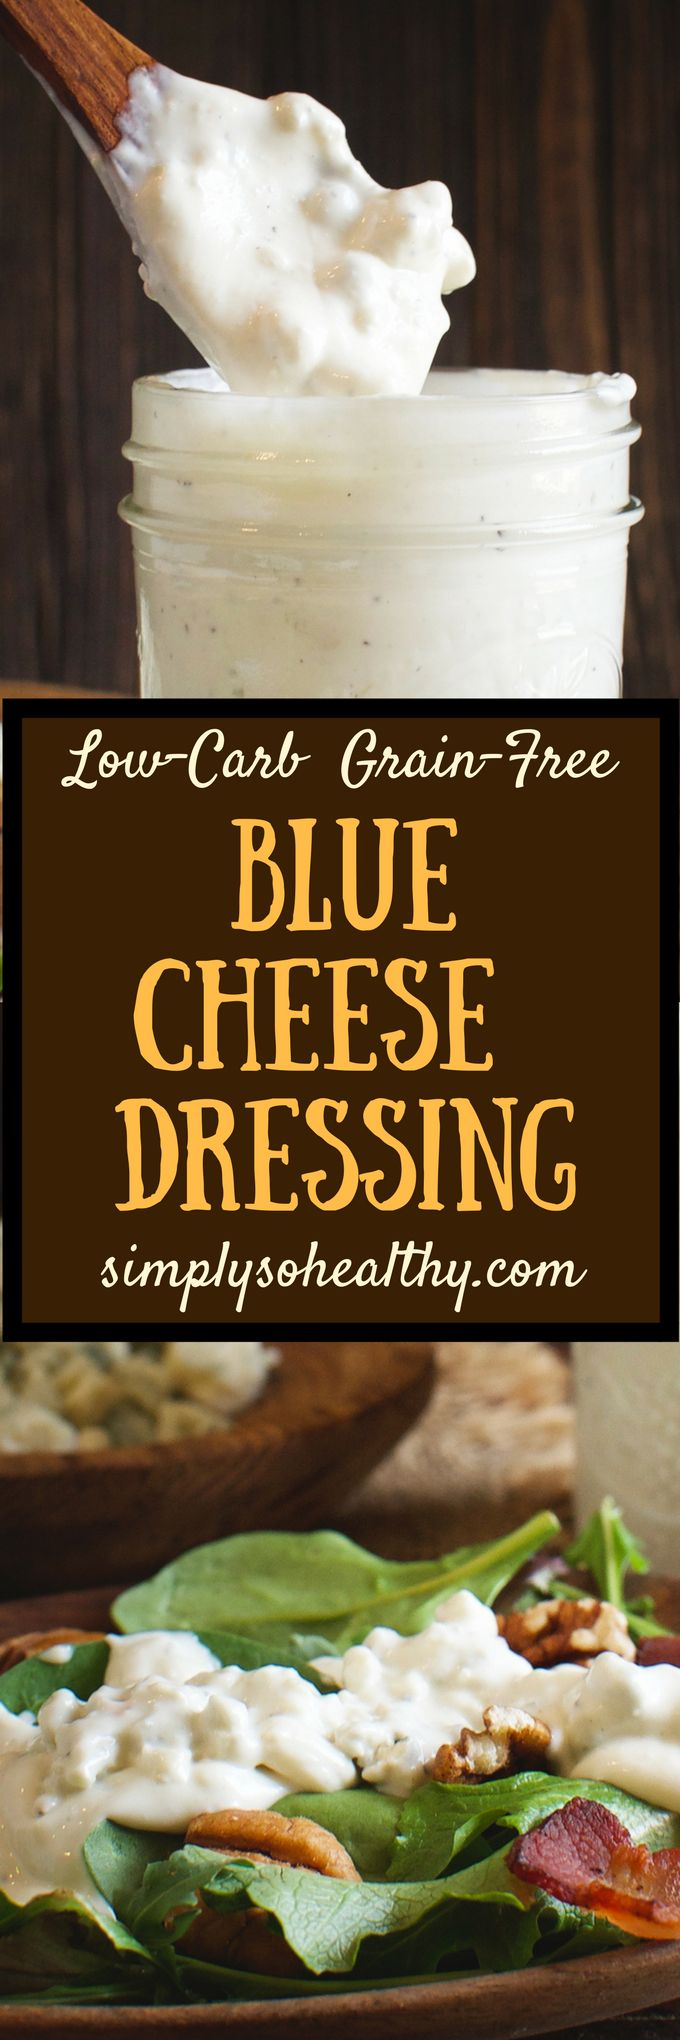 This low-Carb Blue Cheese Dressing (Dip) adds savory creaminess to any salad, but with fewer carbs than most purchased blue cheese dressings. This dressing can be part of a low-carb, keto, Atkins, diabetic, gluten-free. grain-free or Banting diet.